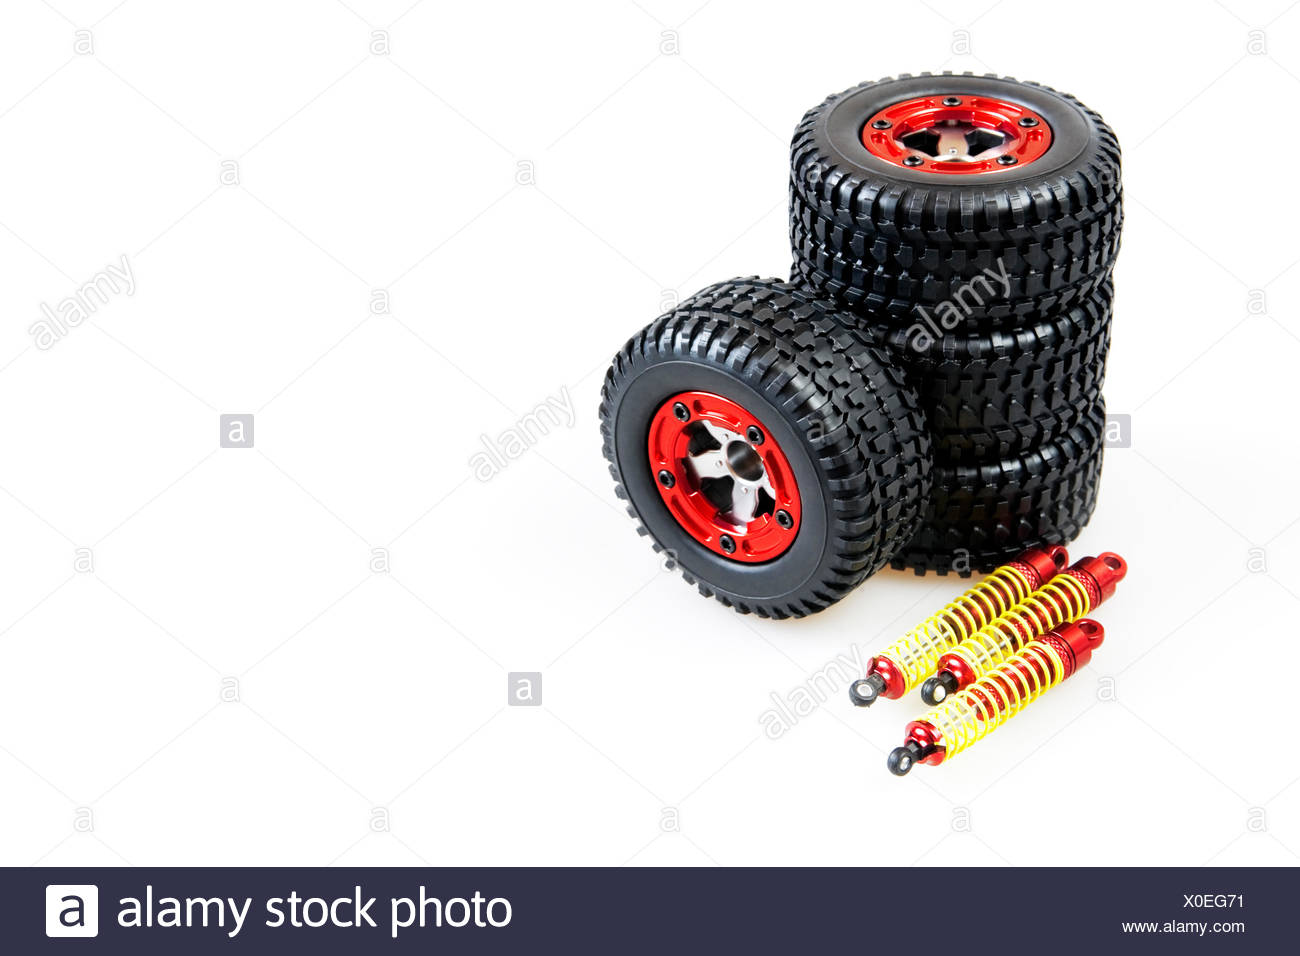 shock-absorbers and wheels of rc car on a white background - Stock Image